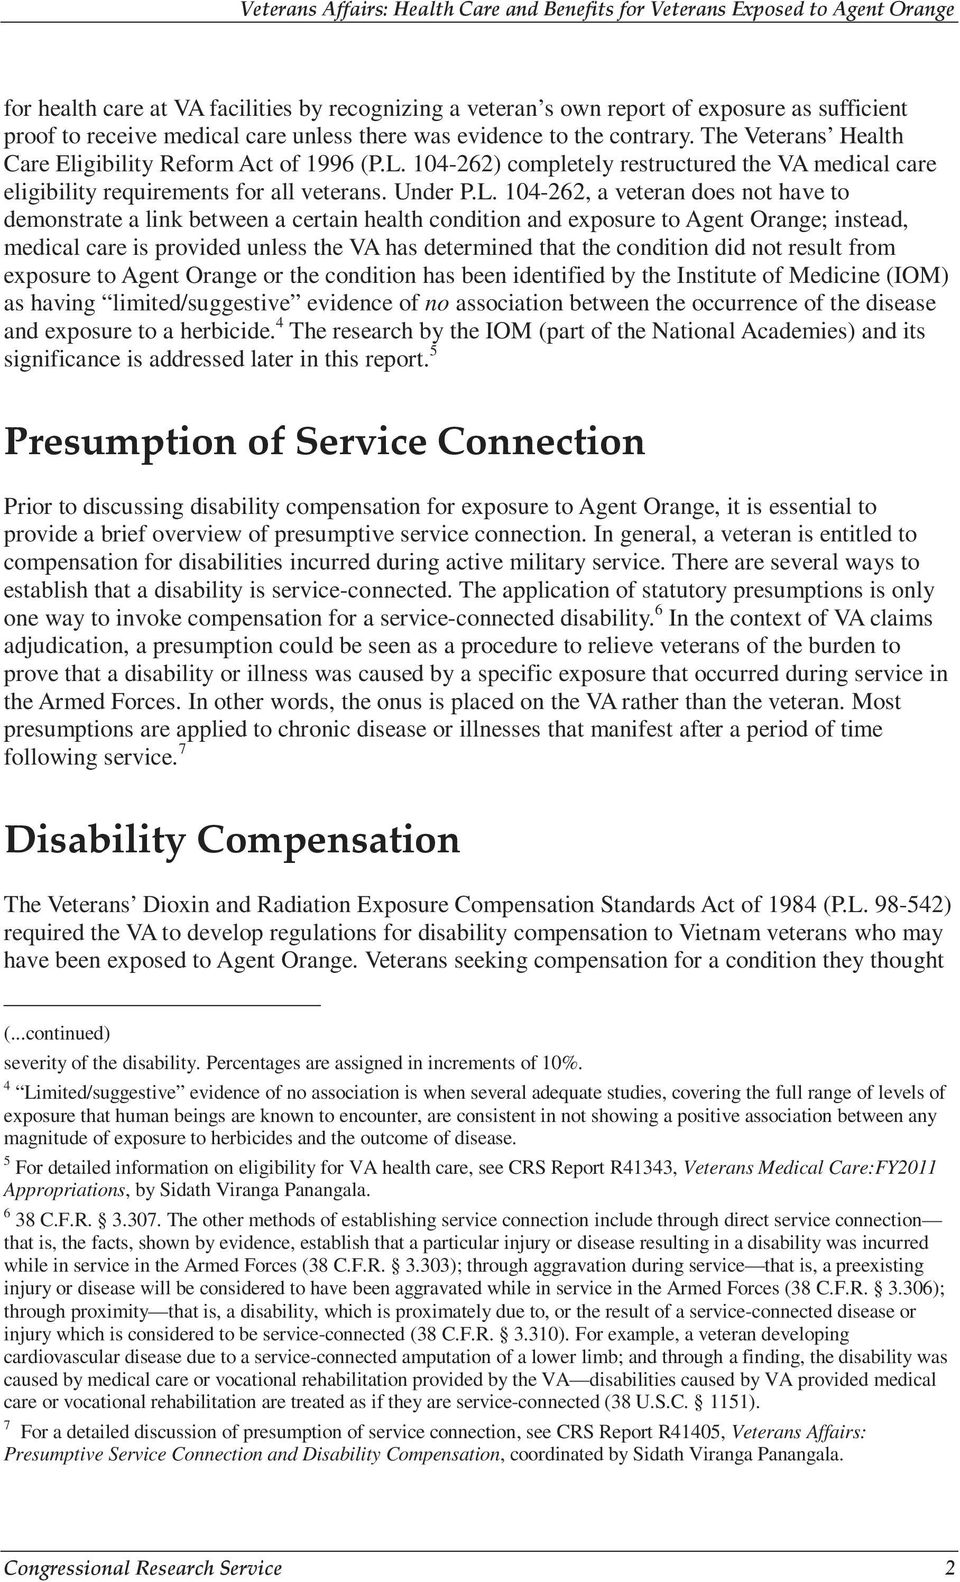 104-262) completely restructured the VA medical care eligibility requirements for all veterans. Under P.L.